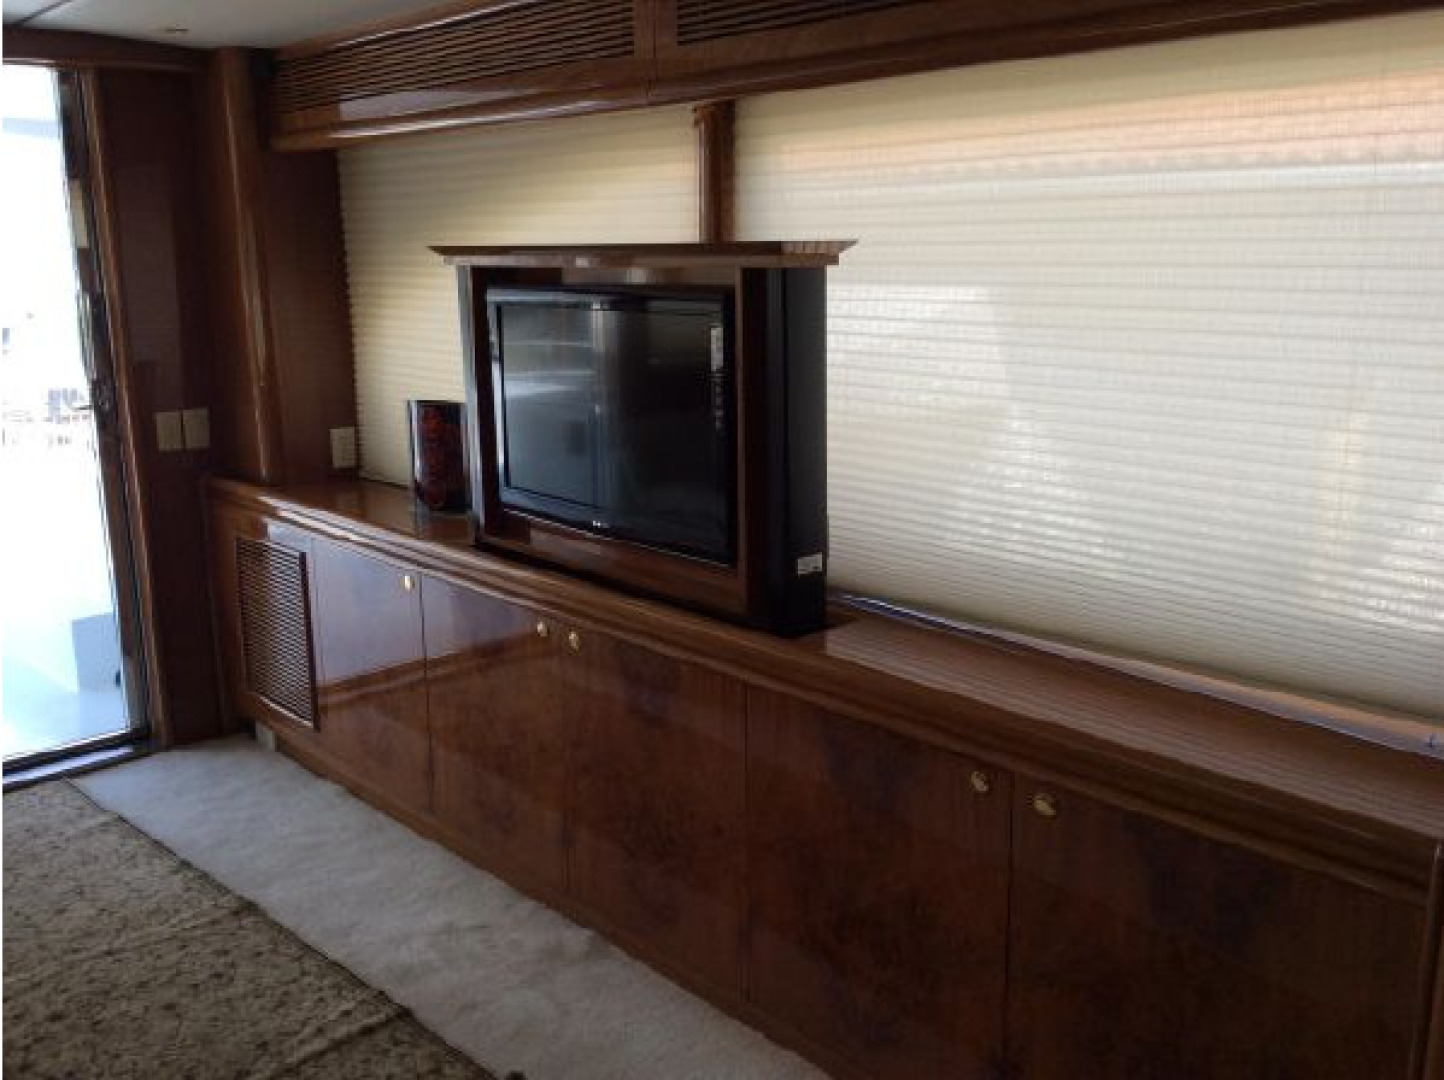 Tarrab-Tri Deck Motor yacht 1990 -Fort Lauderdale-Florida-United States-1551616 | Thumbnail